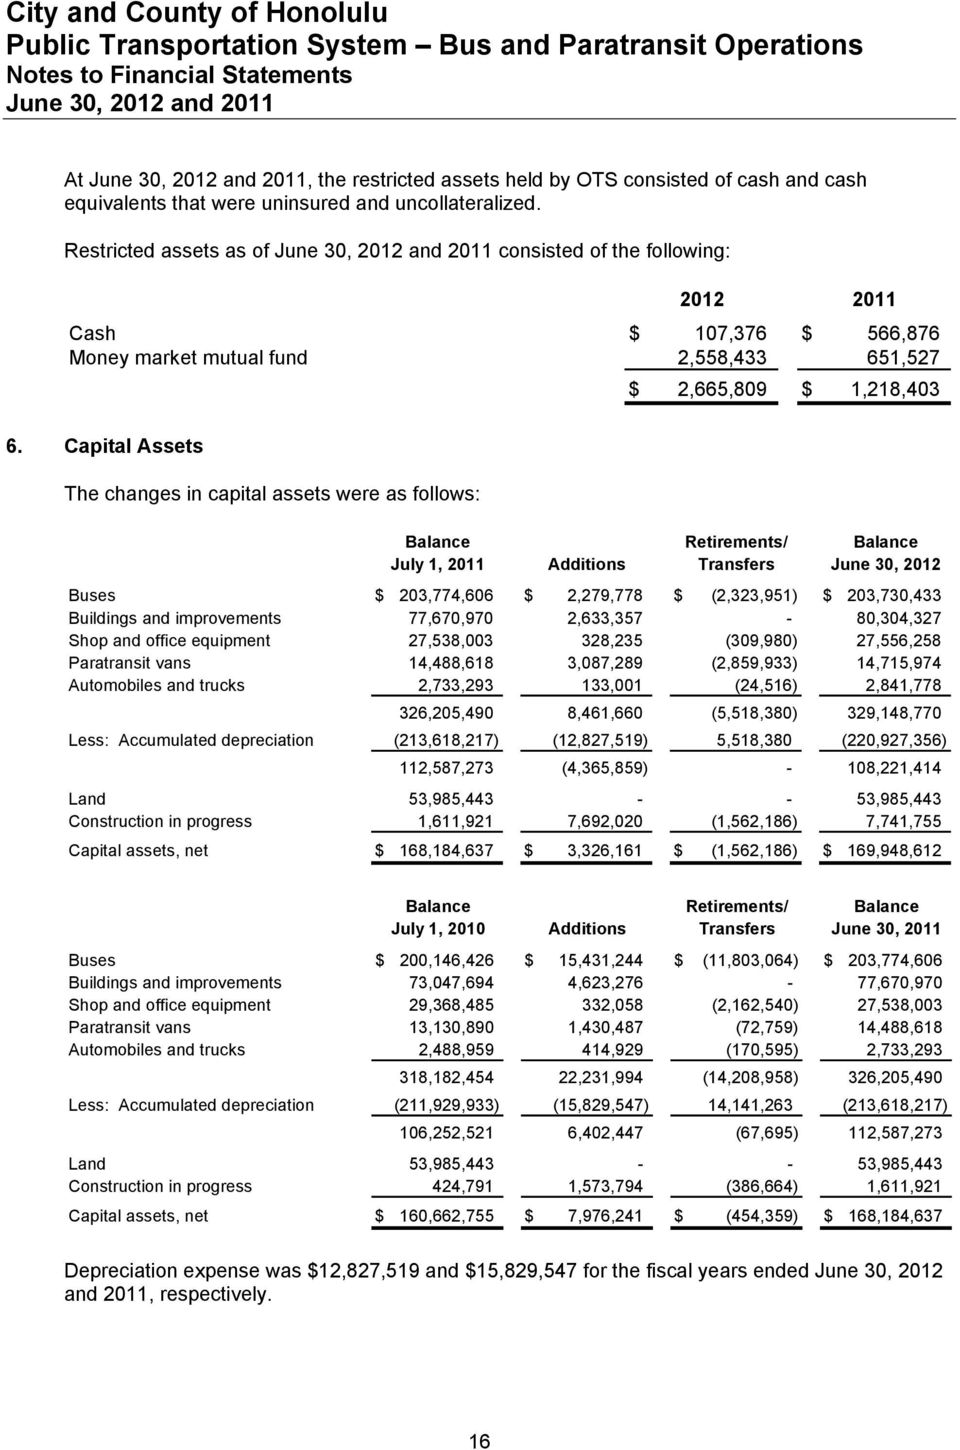 Capital Assets The changes in capital assets were as follows: Balance Retirements/ Balance July 1, 2011 Additions Transfers June 30, 2012 Buses $ 203,774,606 $ 2,279,778 $ (2,323,951) $ 203,730,433